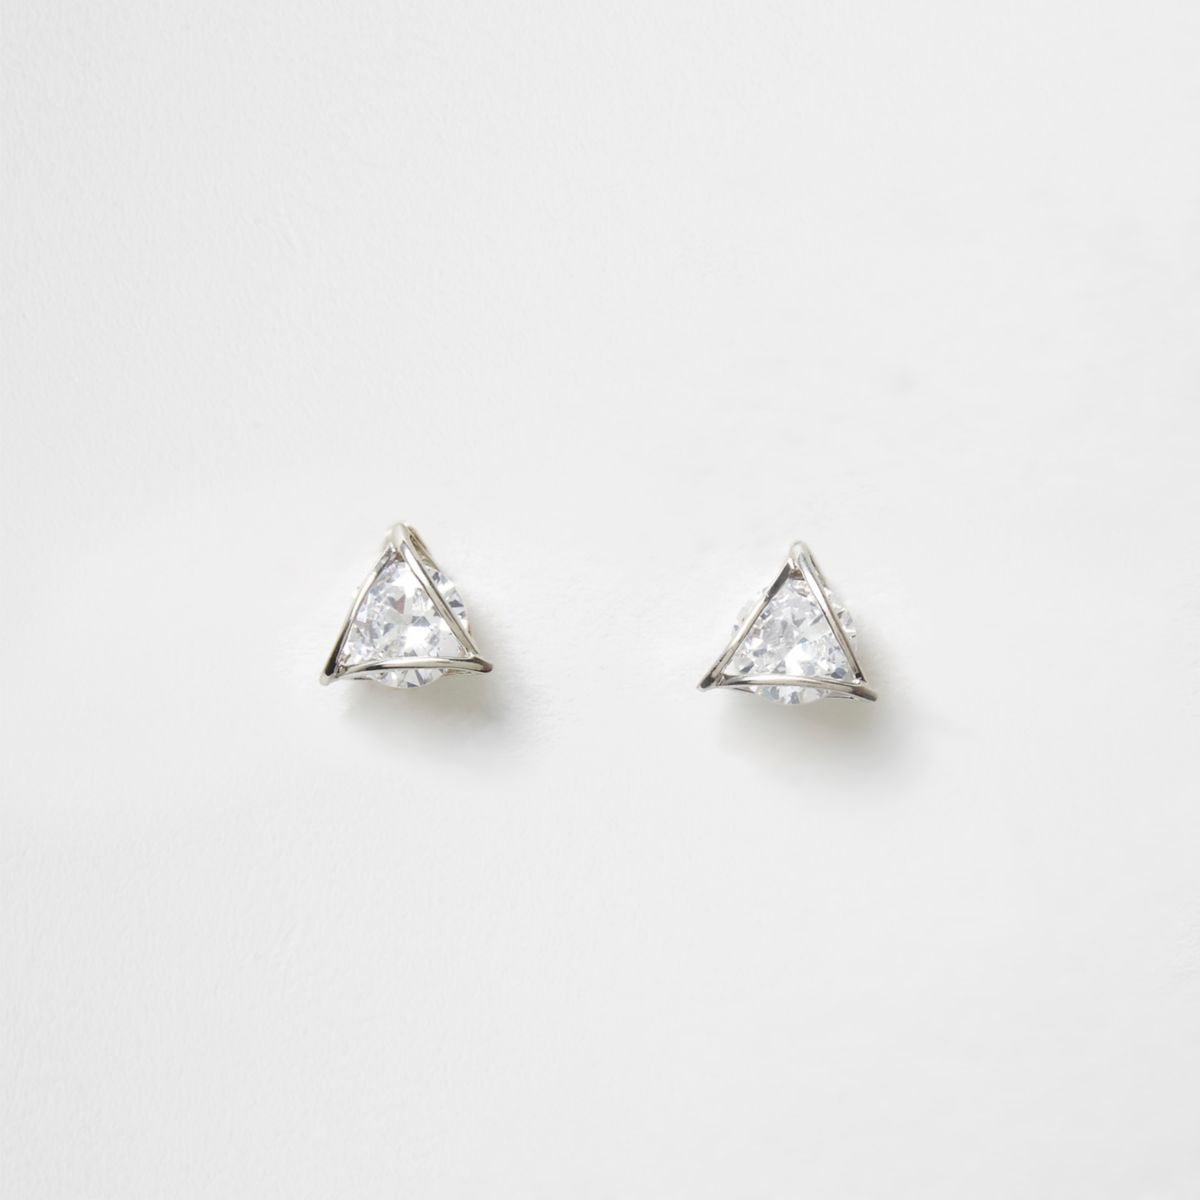 Cubic zirconia diamante triangle earrings